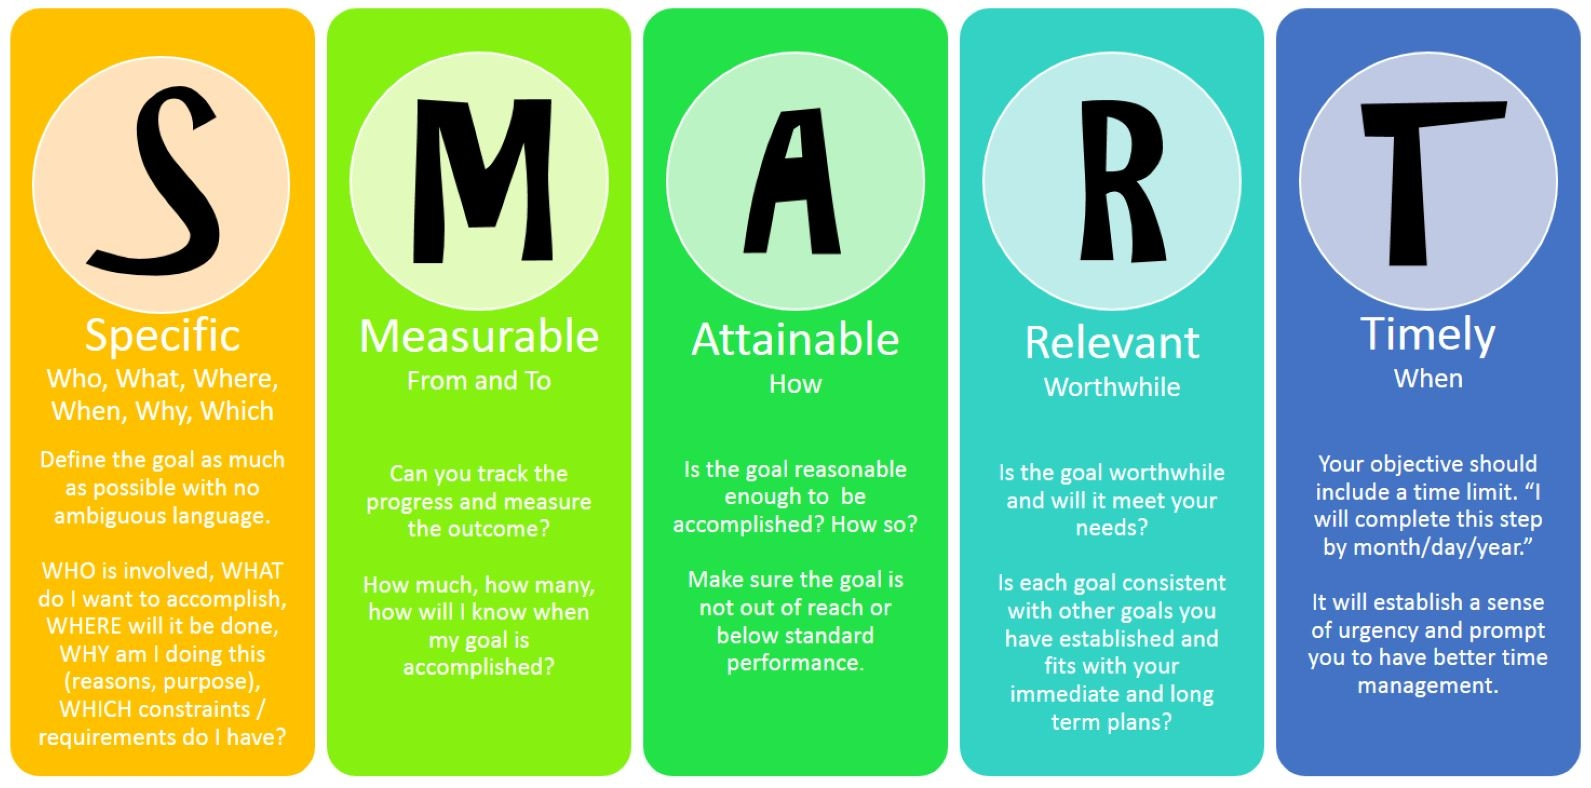 Bright colored chart with the acronym of SMART, which stands for specific, measurable, attainable, relevant and timely when crafting goals to support content marketing.